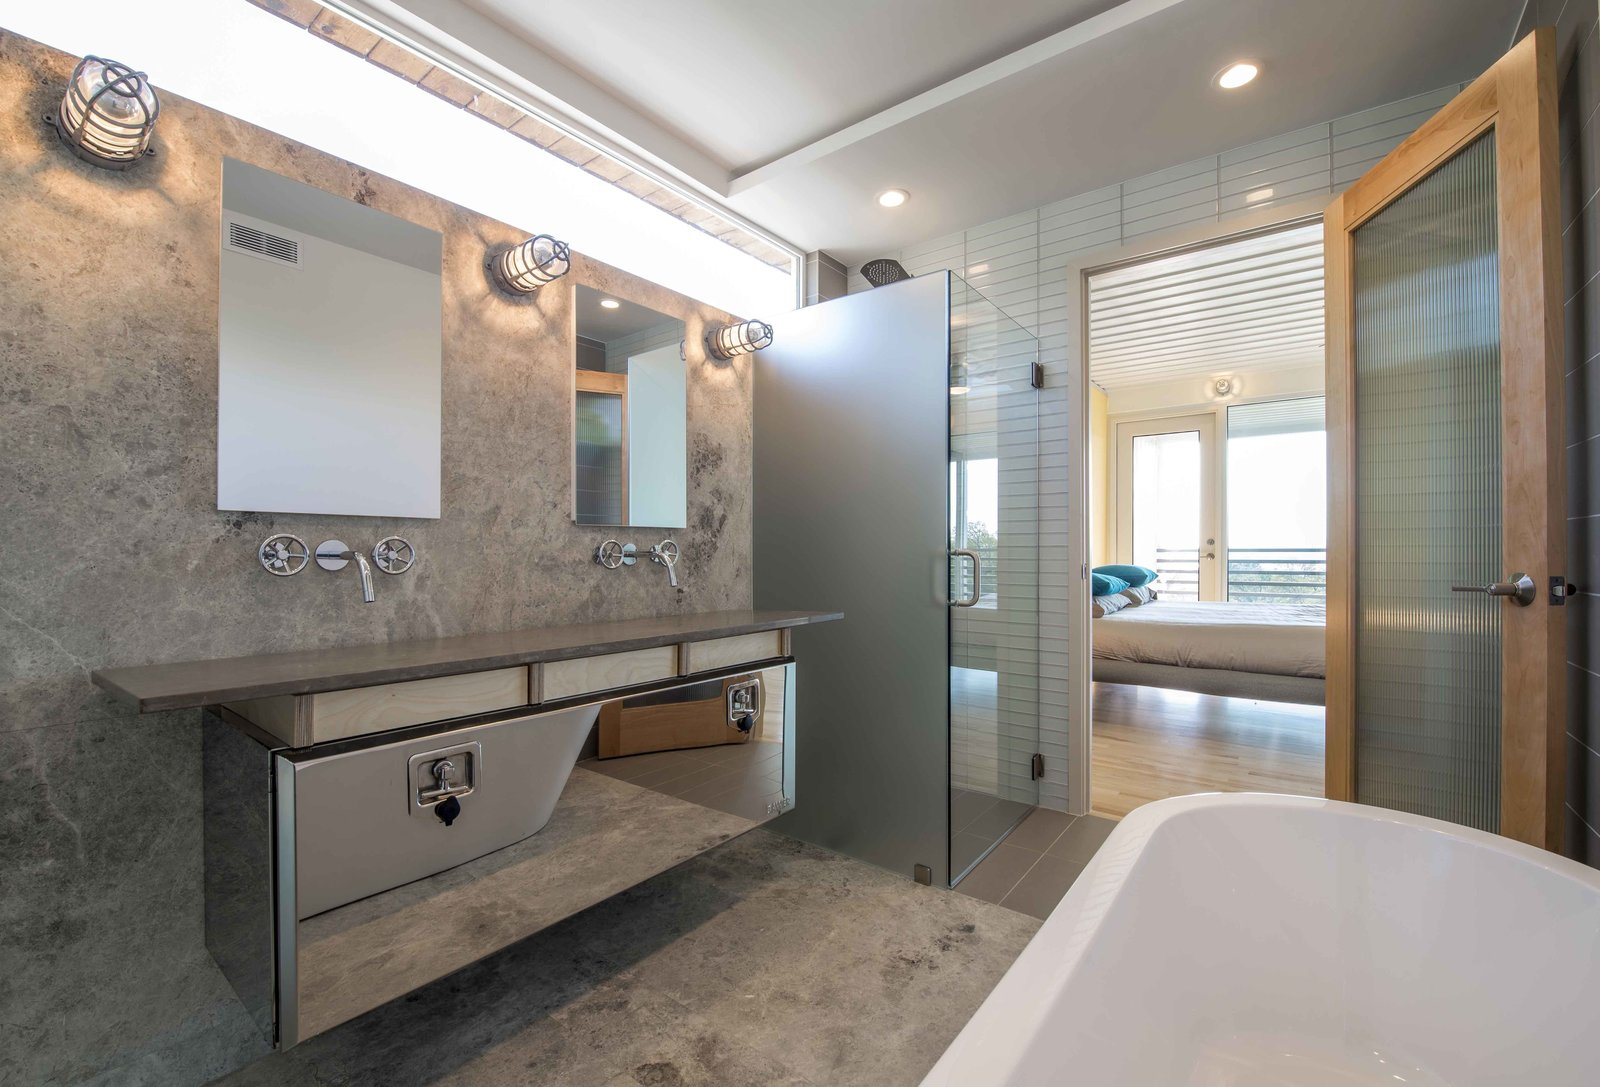 Bath Room, Freestanding Tub, Enclosed Shower, Corner Shower, Wall Lighting, and Ceiling Lighting The industrial thread continues as a truck tool box converts into an elegant vanity in the master bathroom.  Photo 6 of 9 in 14 Shipping Containers Were Upcycled For This Dallas Home